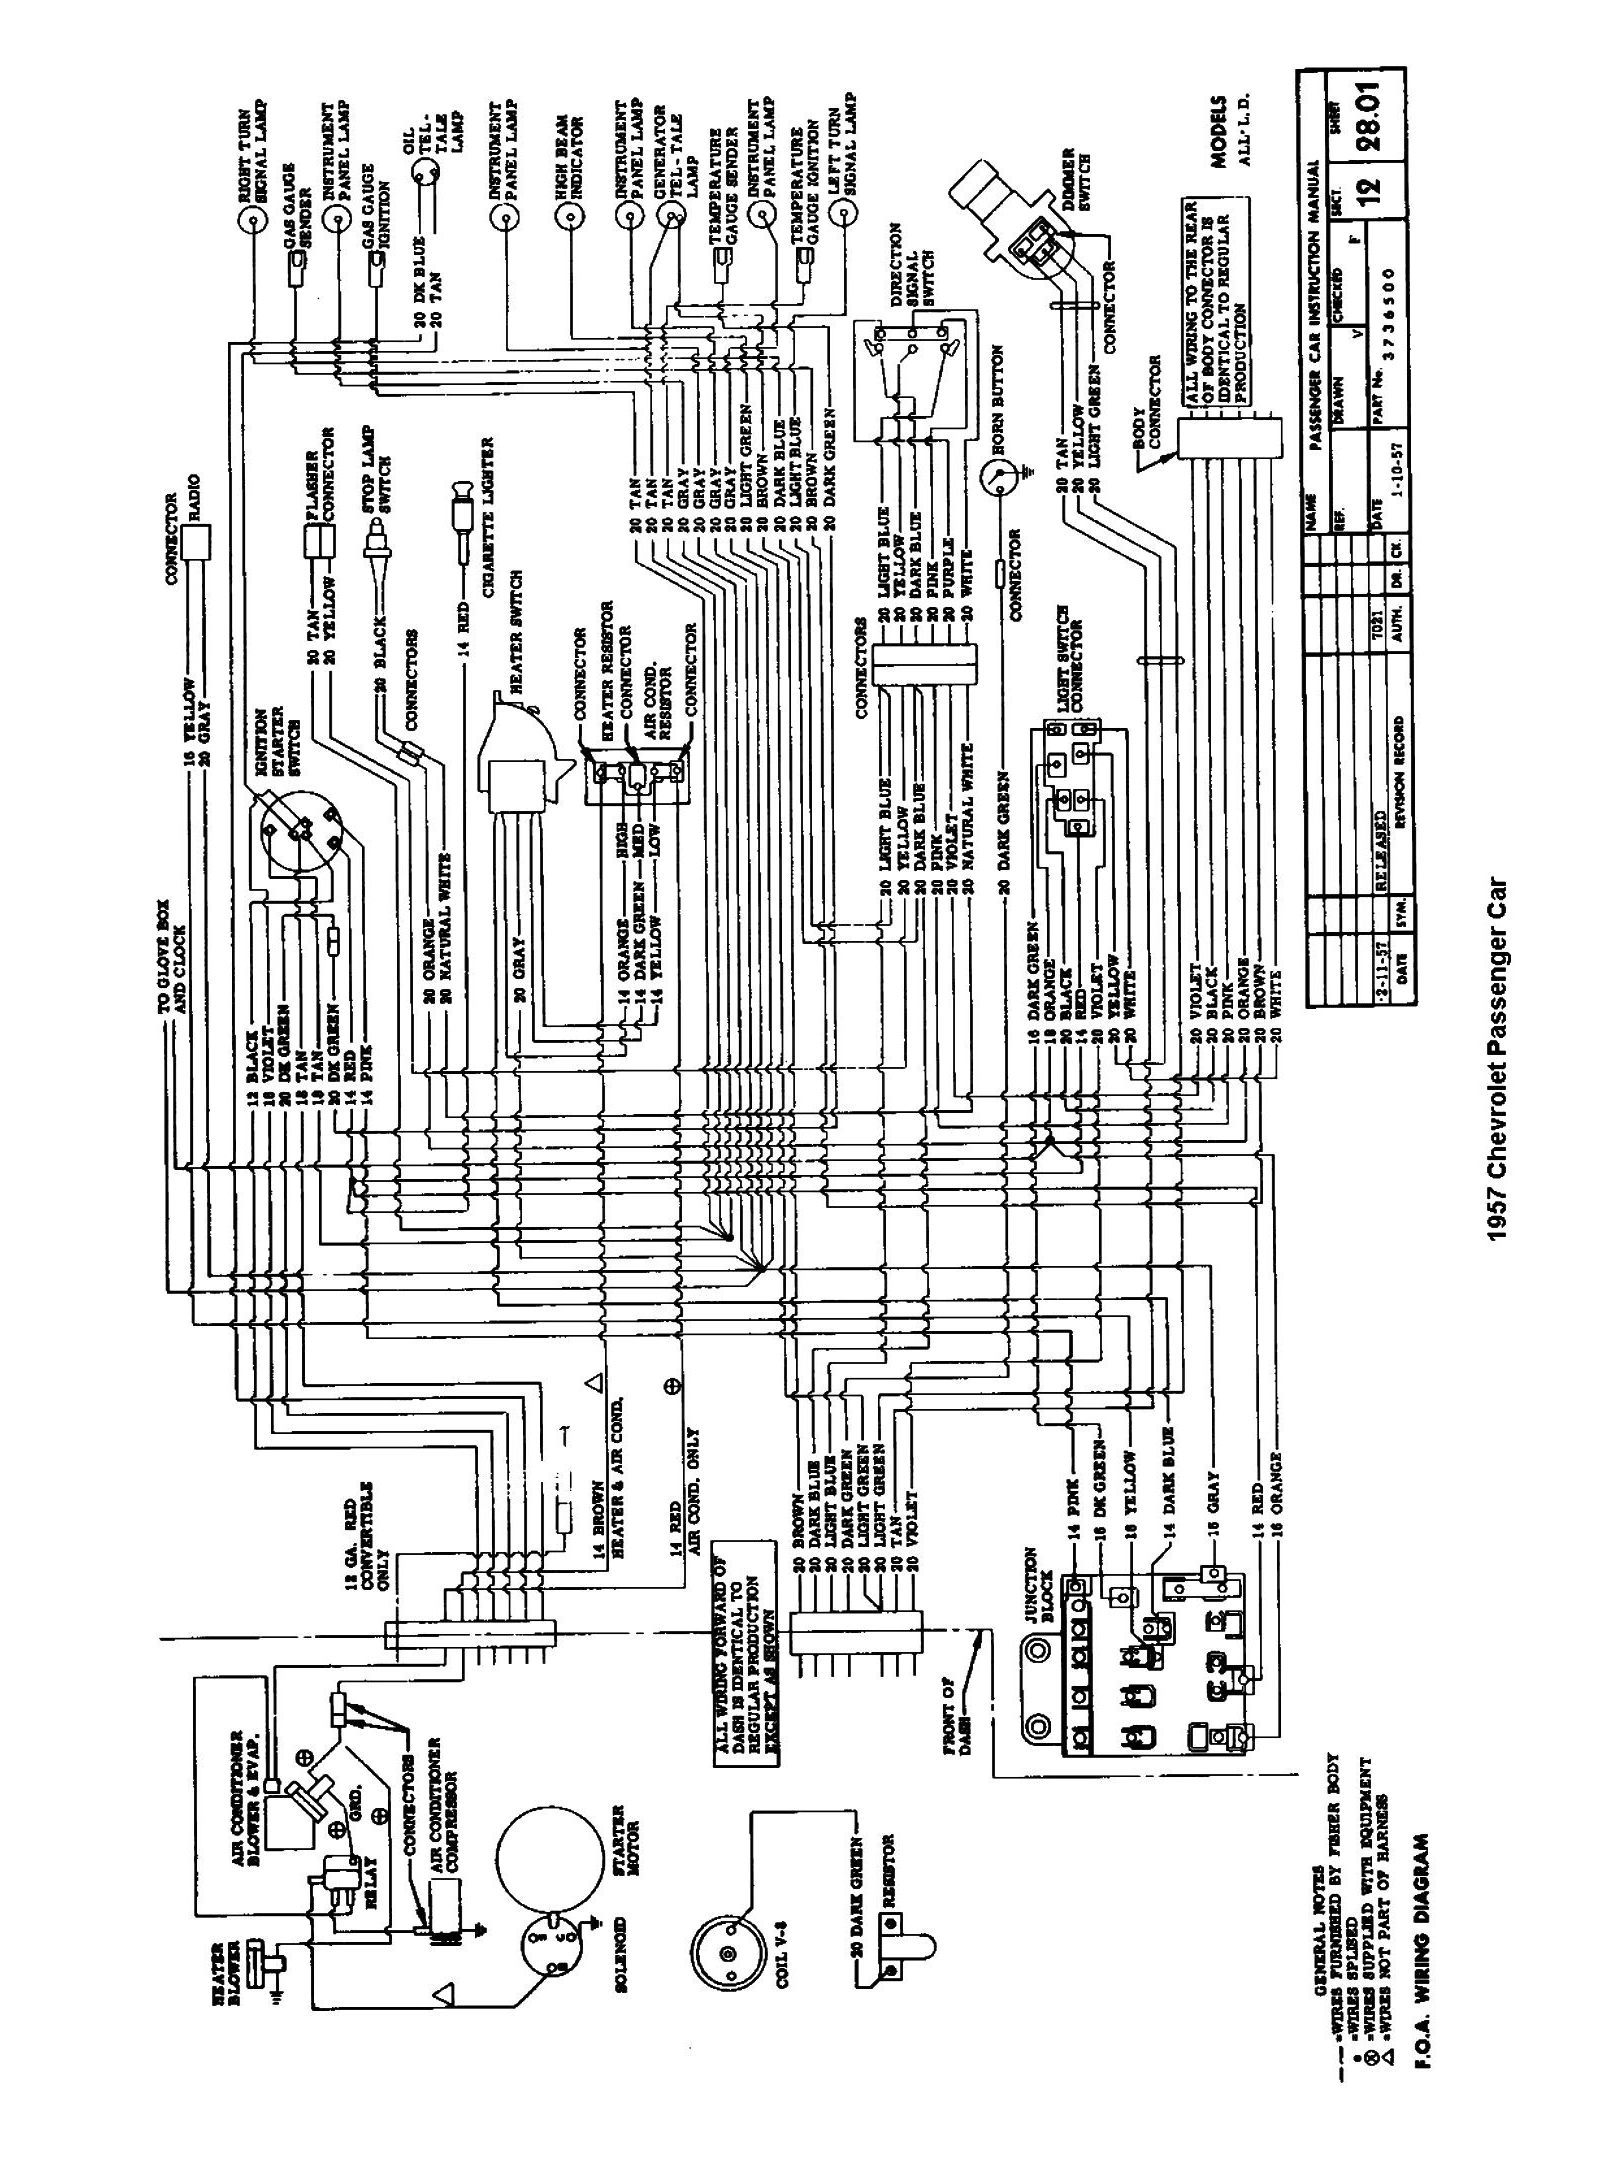 Car on 1966 Mustang Heater Wiring Diagram